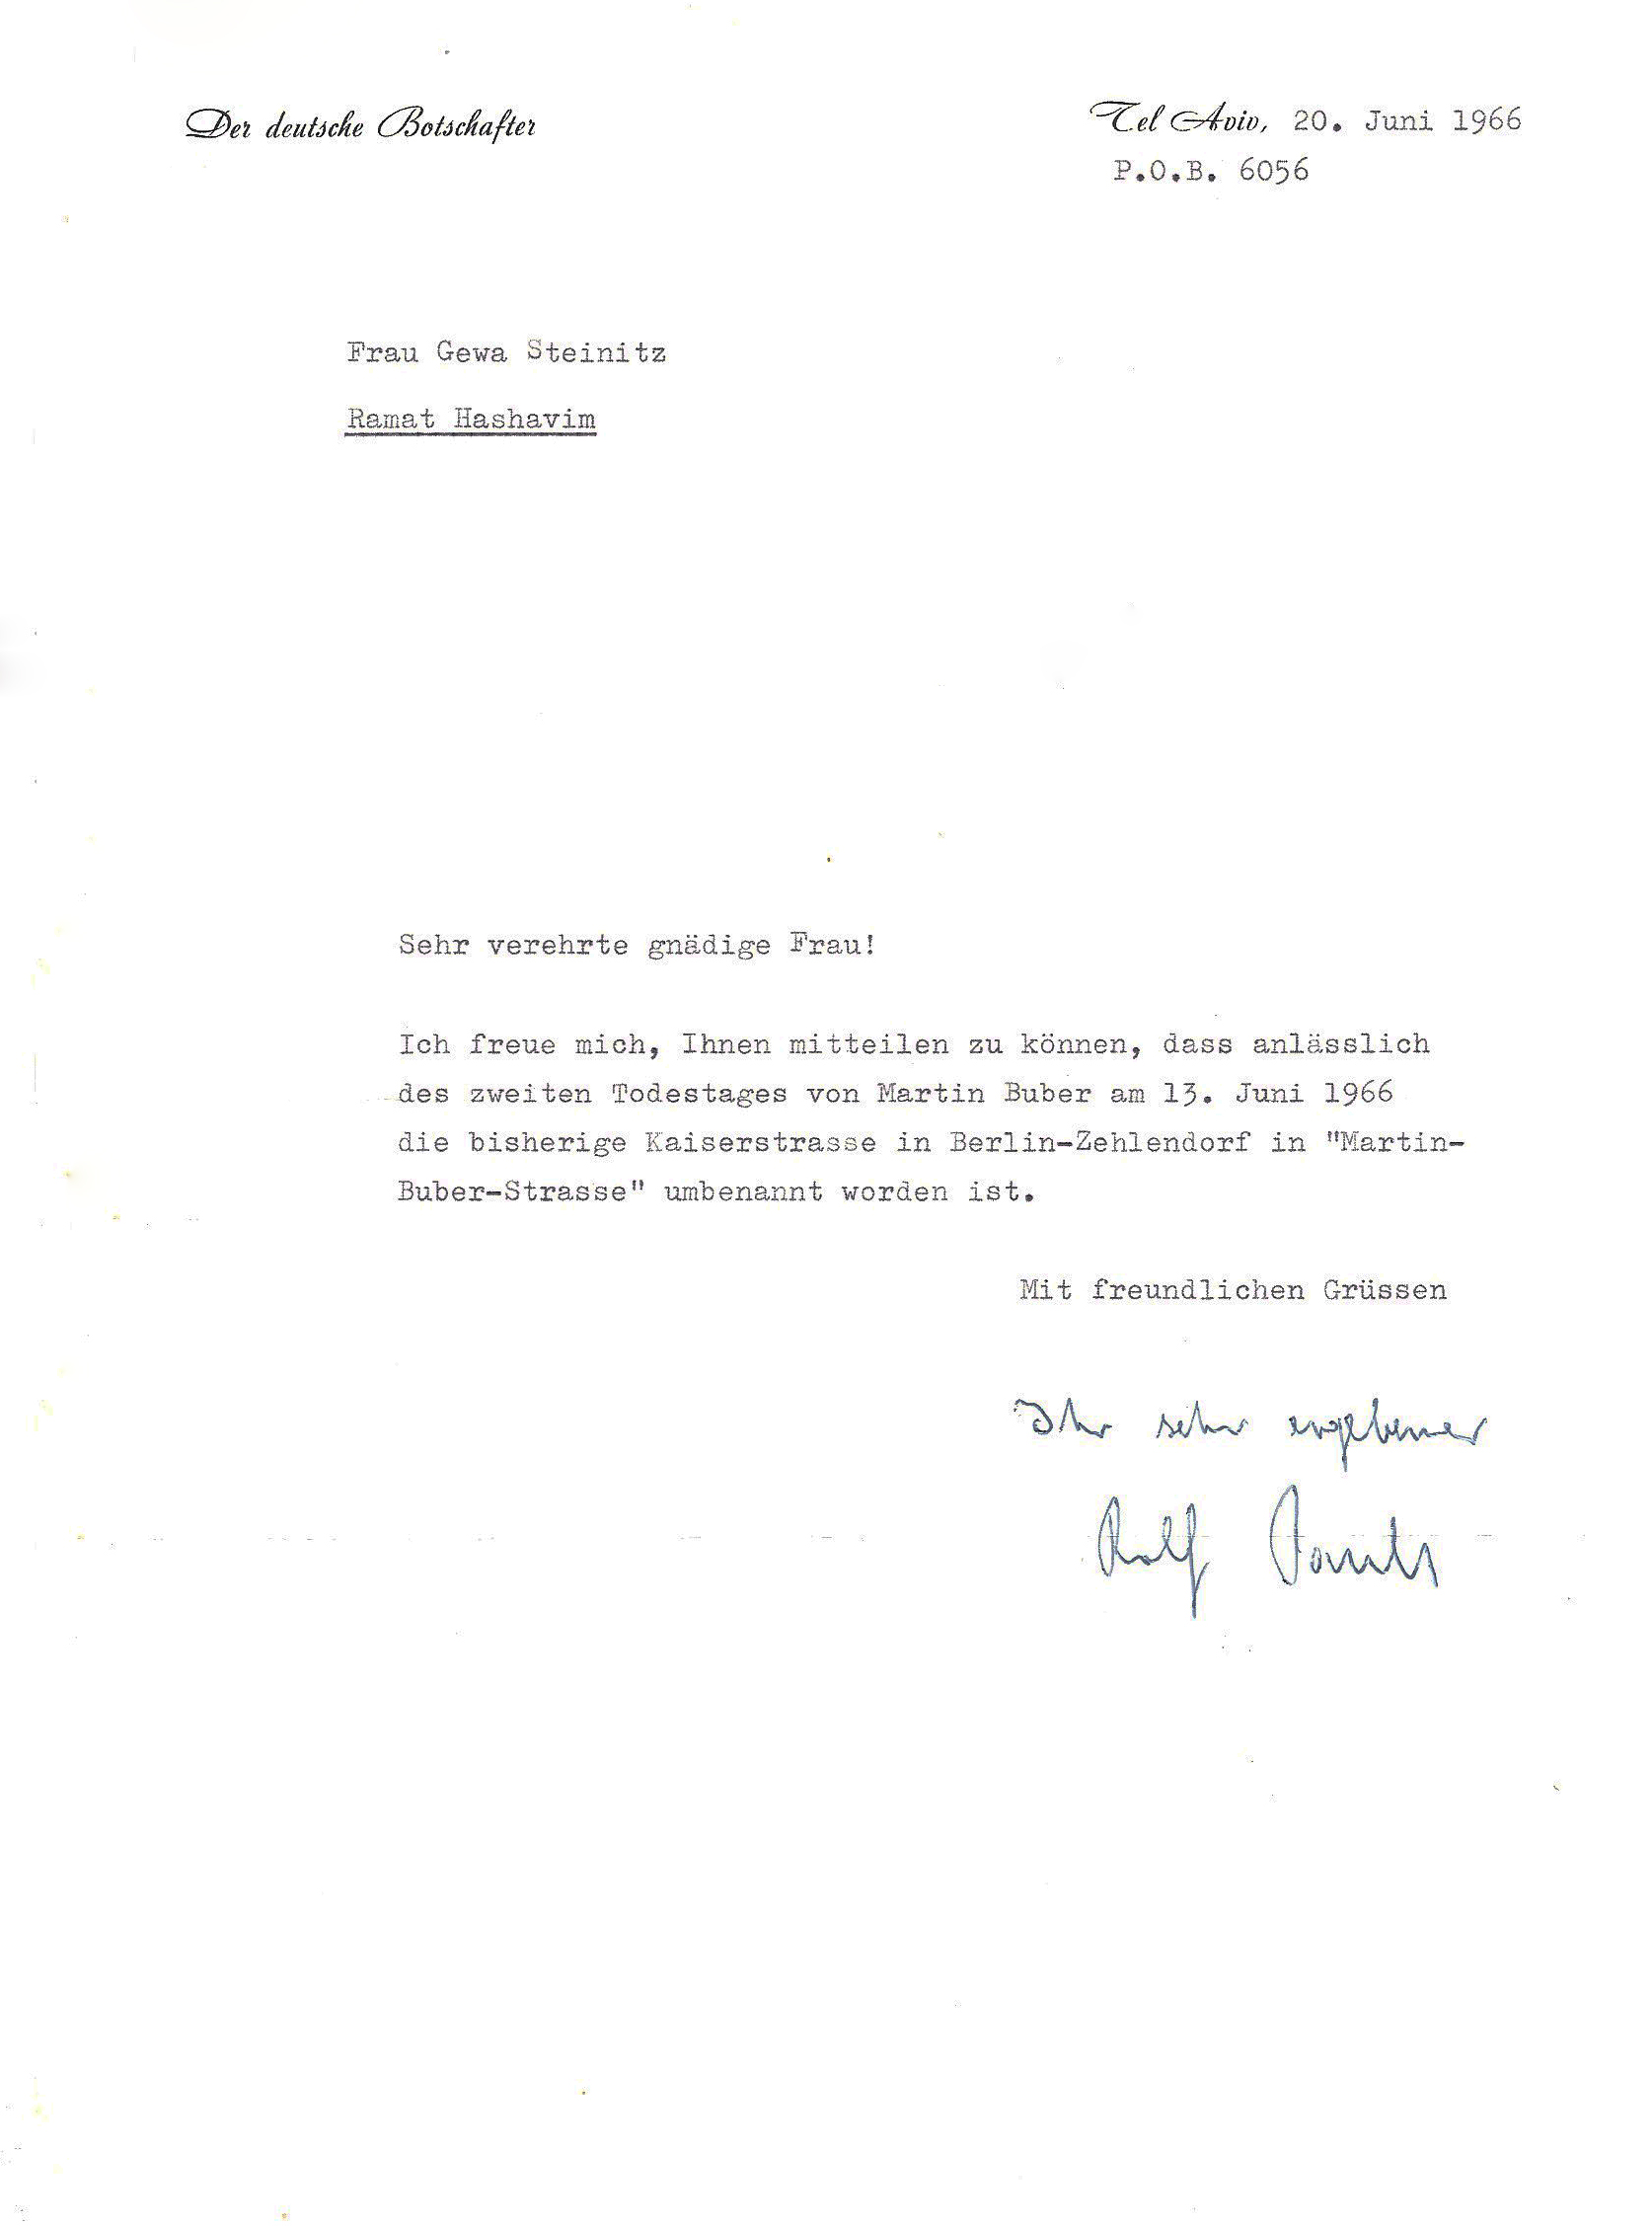 letter of first german ambassador  rolf pauls  to chava